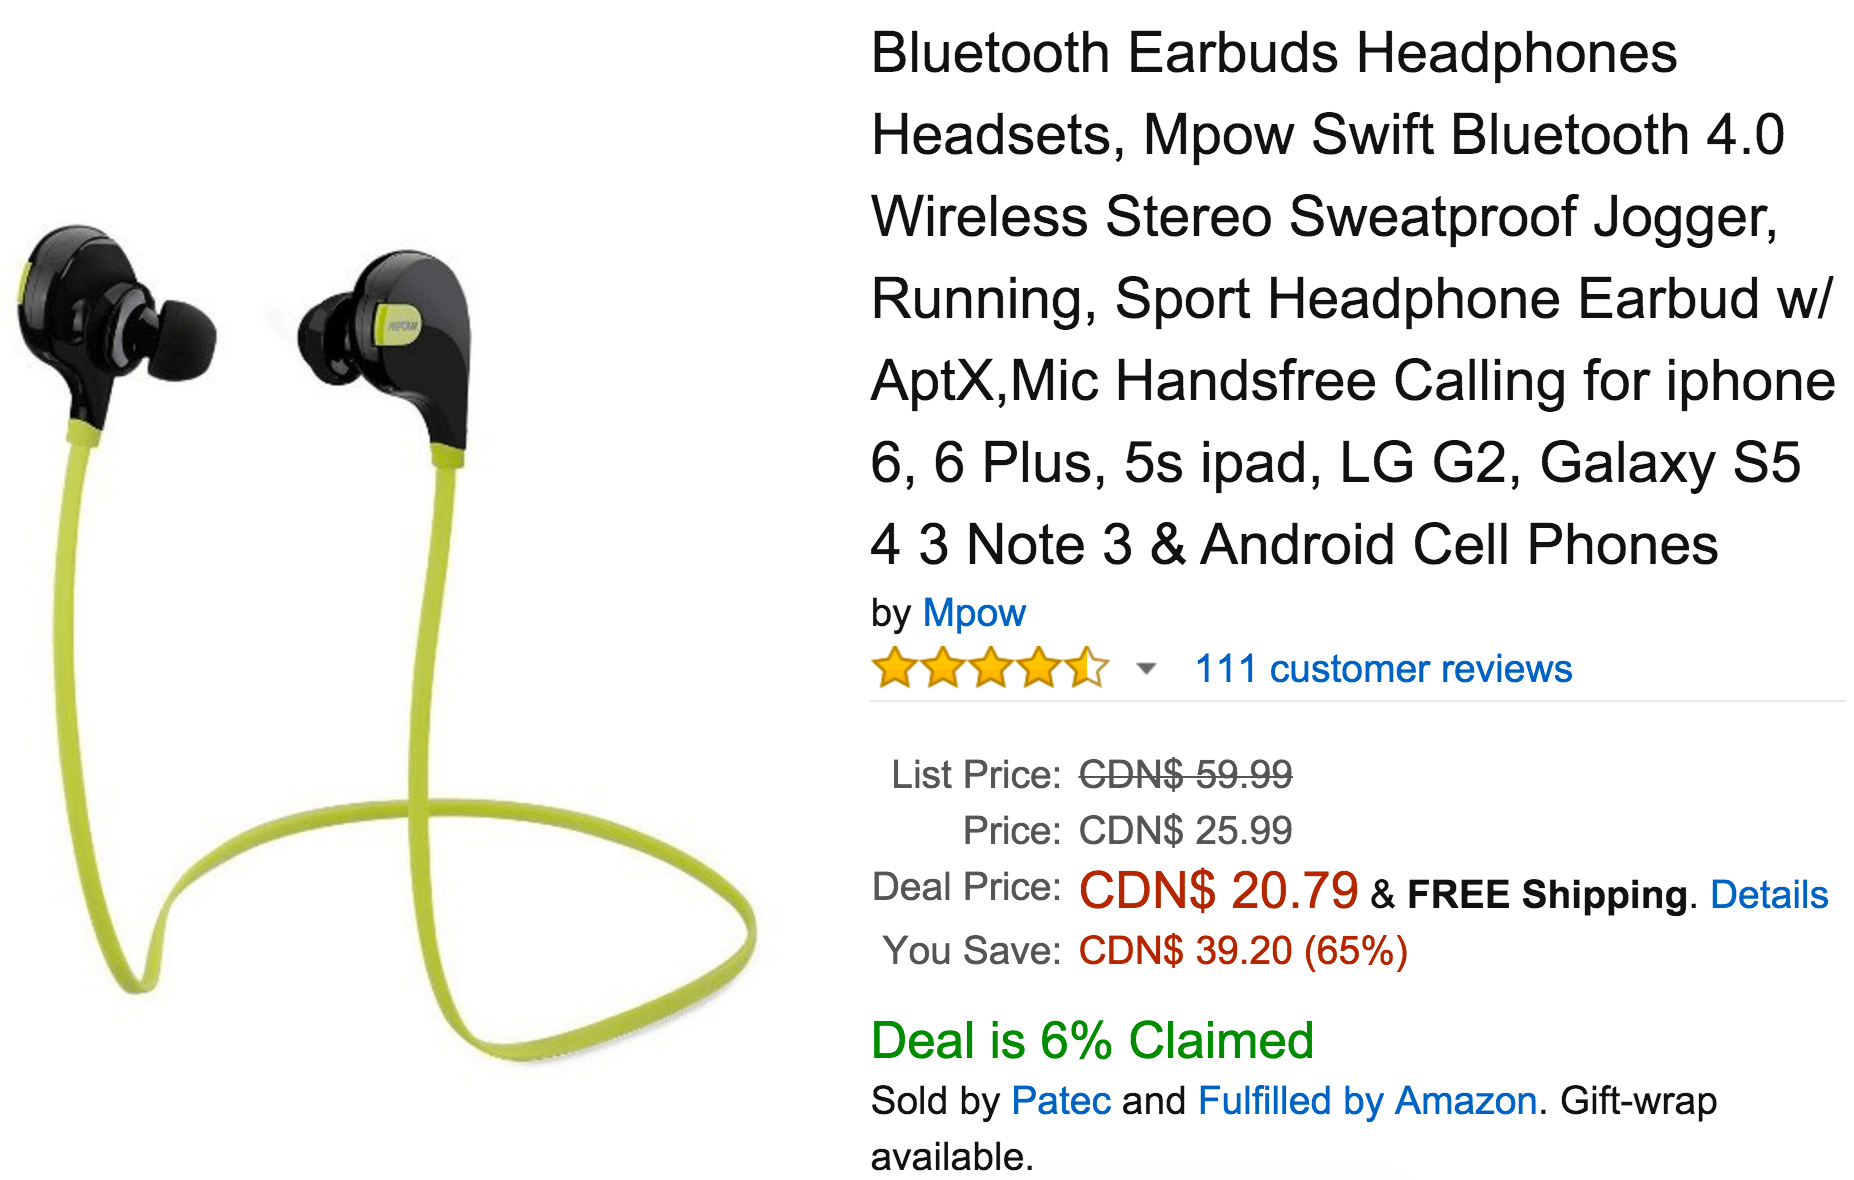 Amazon Canada Today S Deals Save 65 On Bluetooth Earbuds Headphones Headsets Up To 63 Off Select Furreal Friends Pets Canadian Freebies Coupons Deals Bargains Flyers Contests Canada